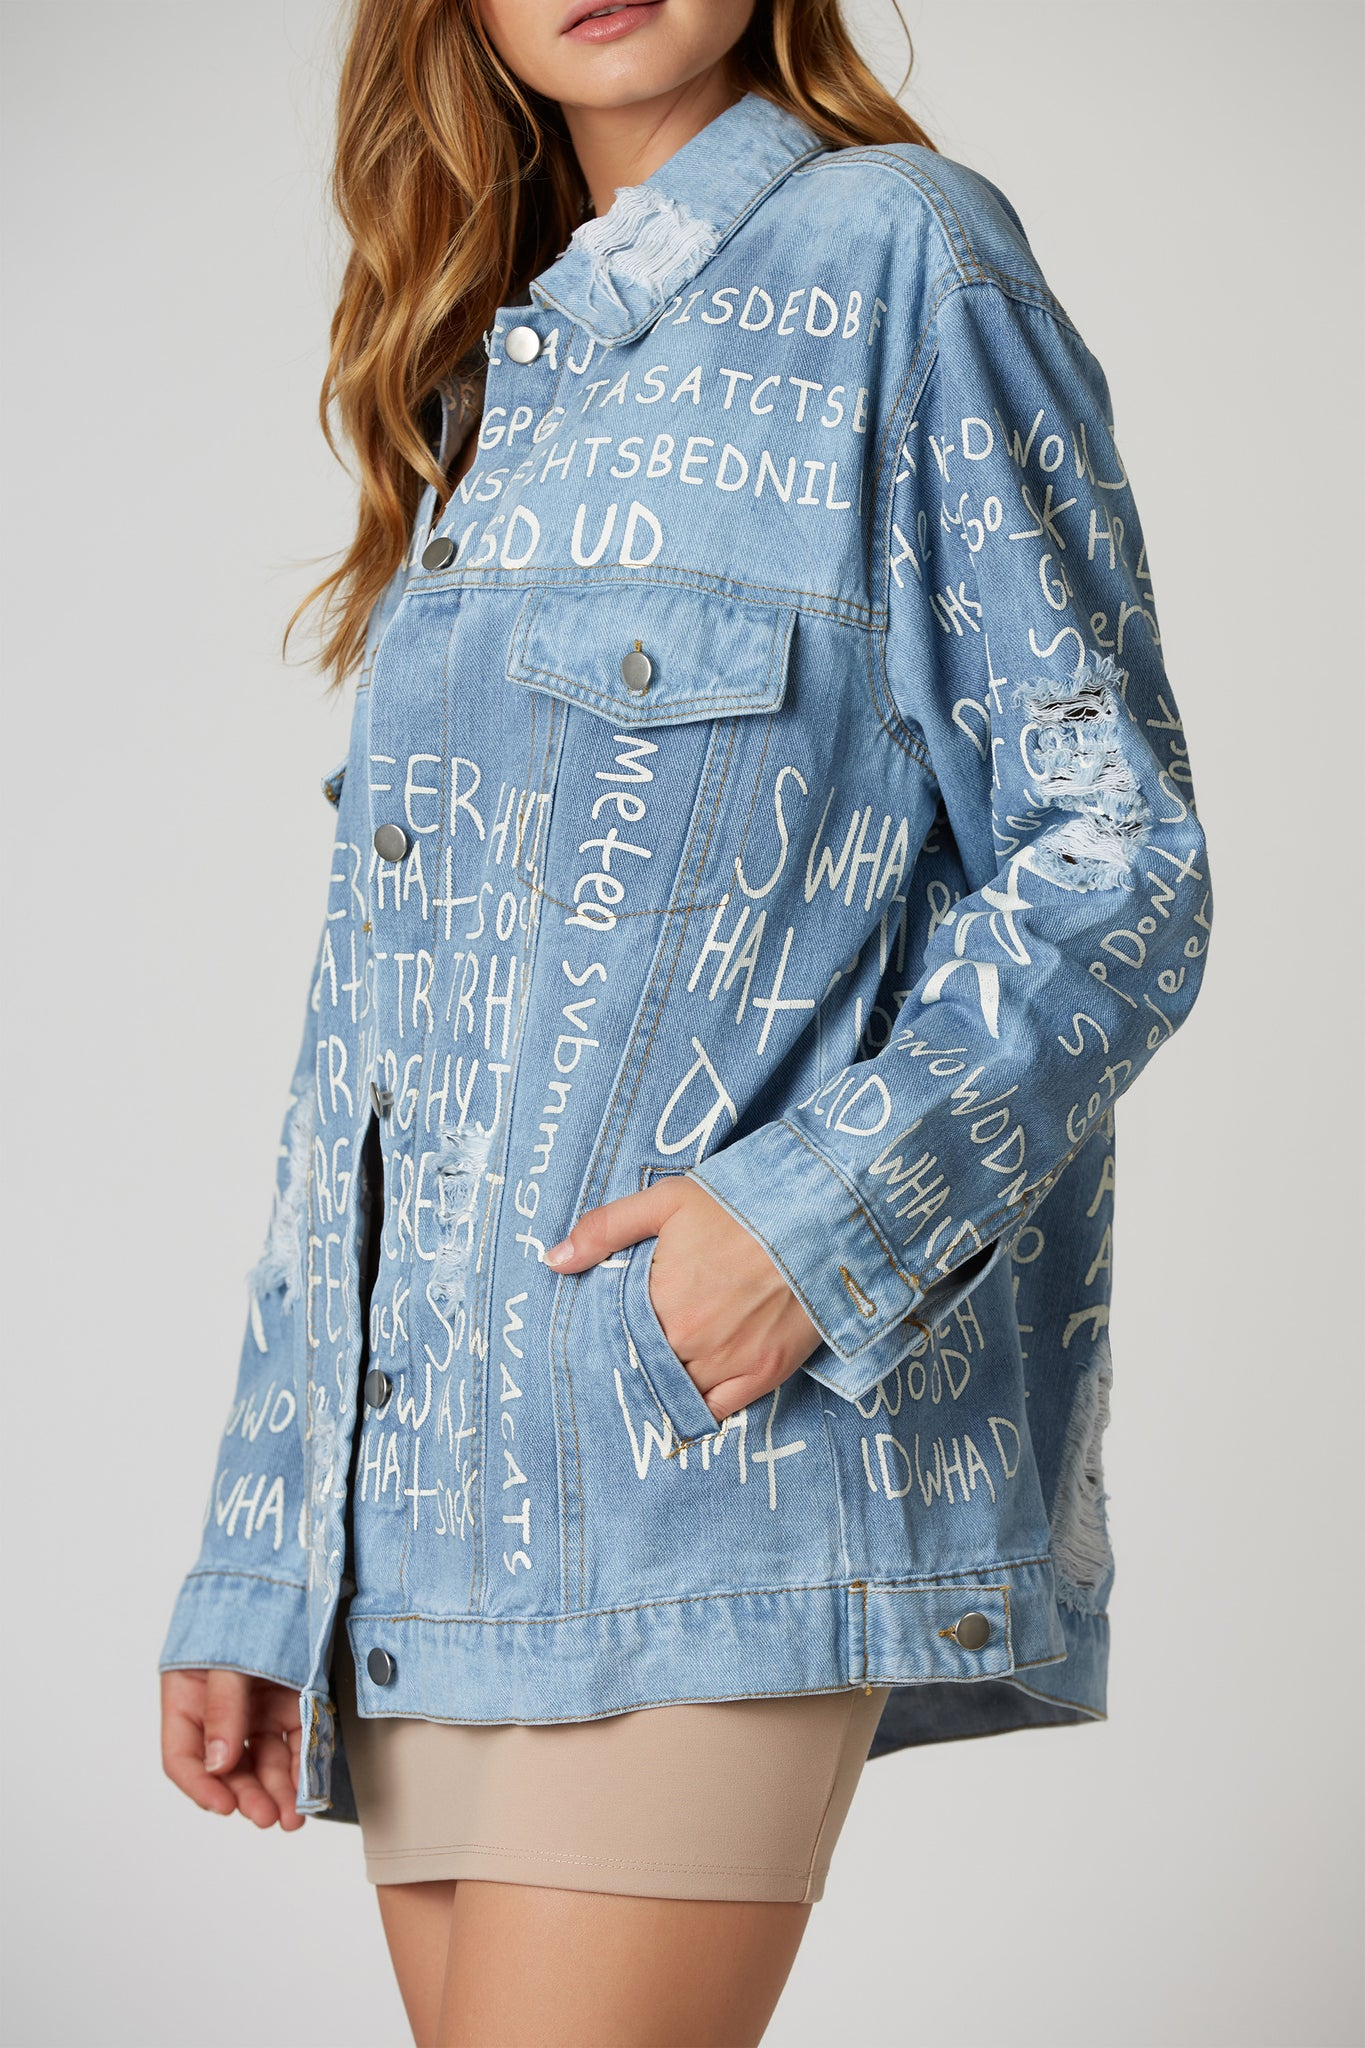 Casual oversized graphic denim jacket with shredded detailing throughout. Side pockets with button closure.